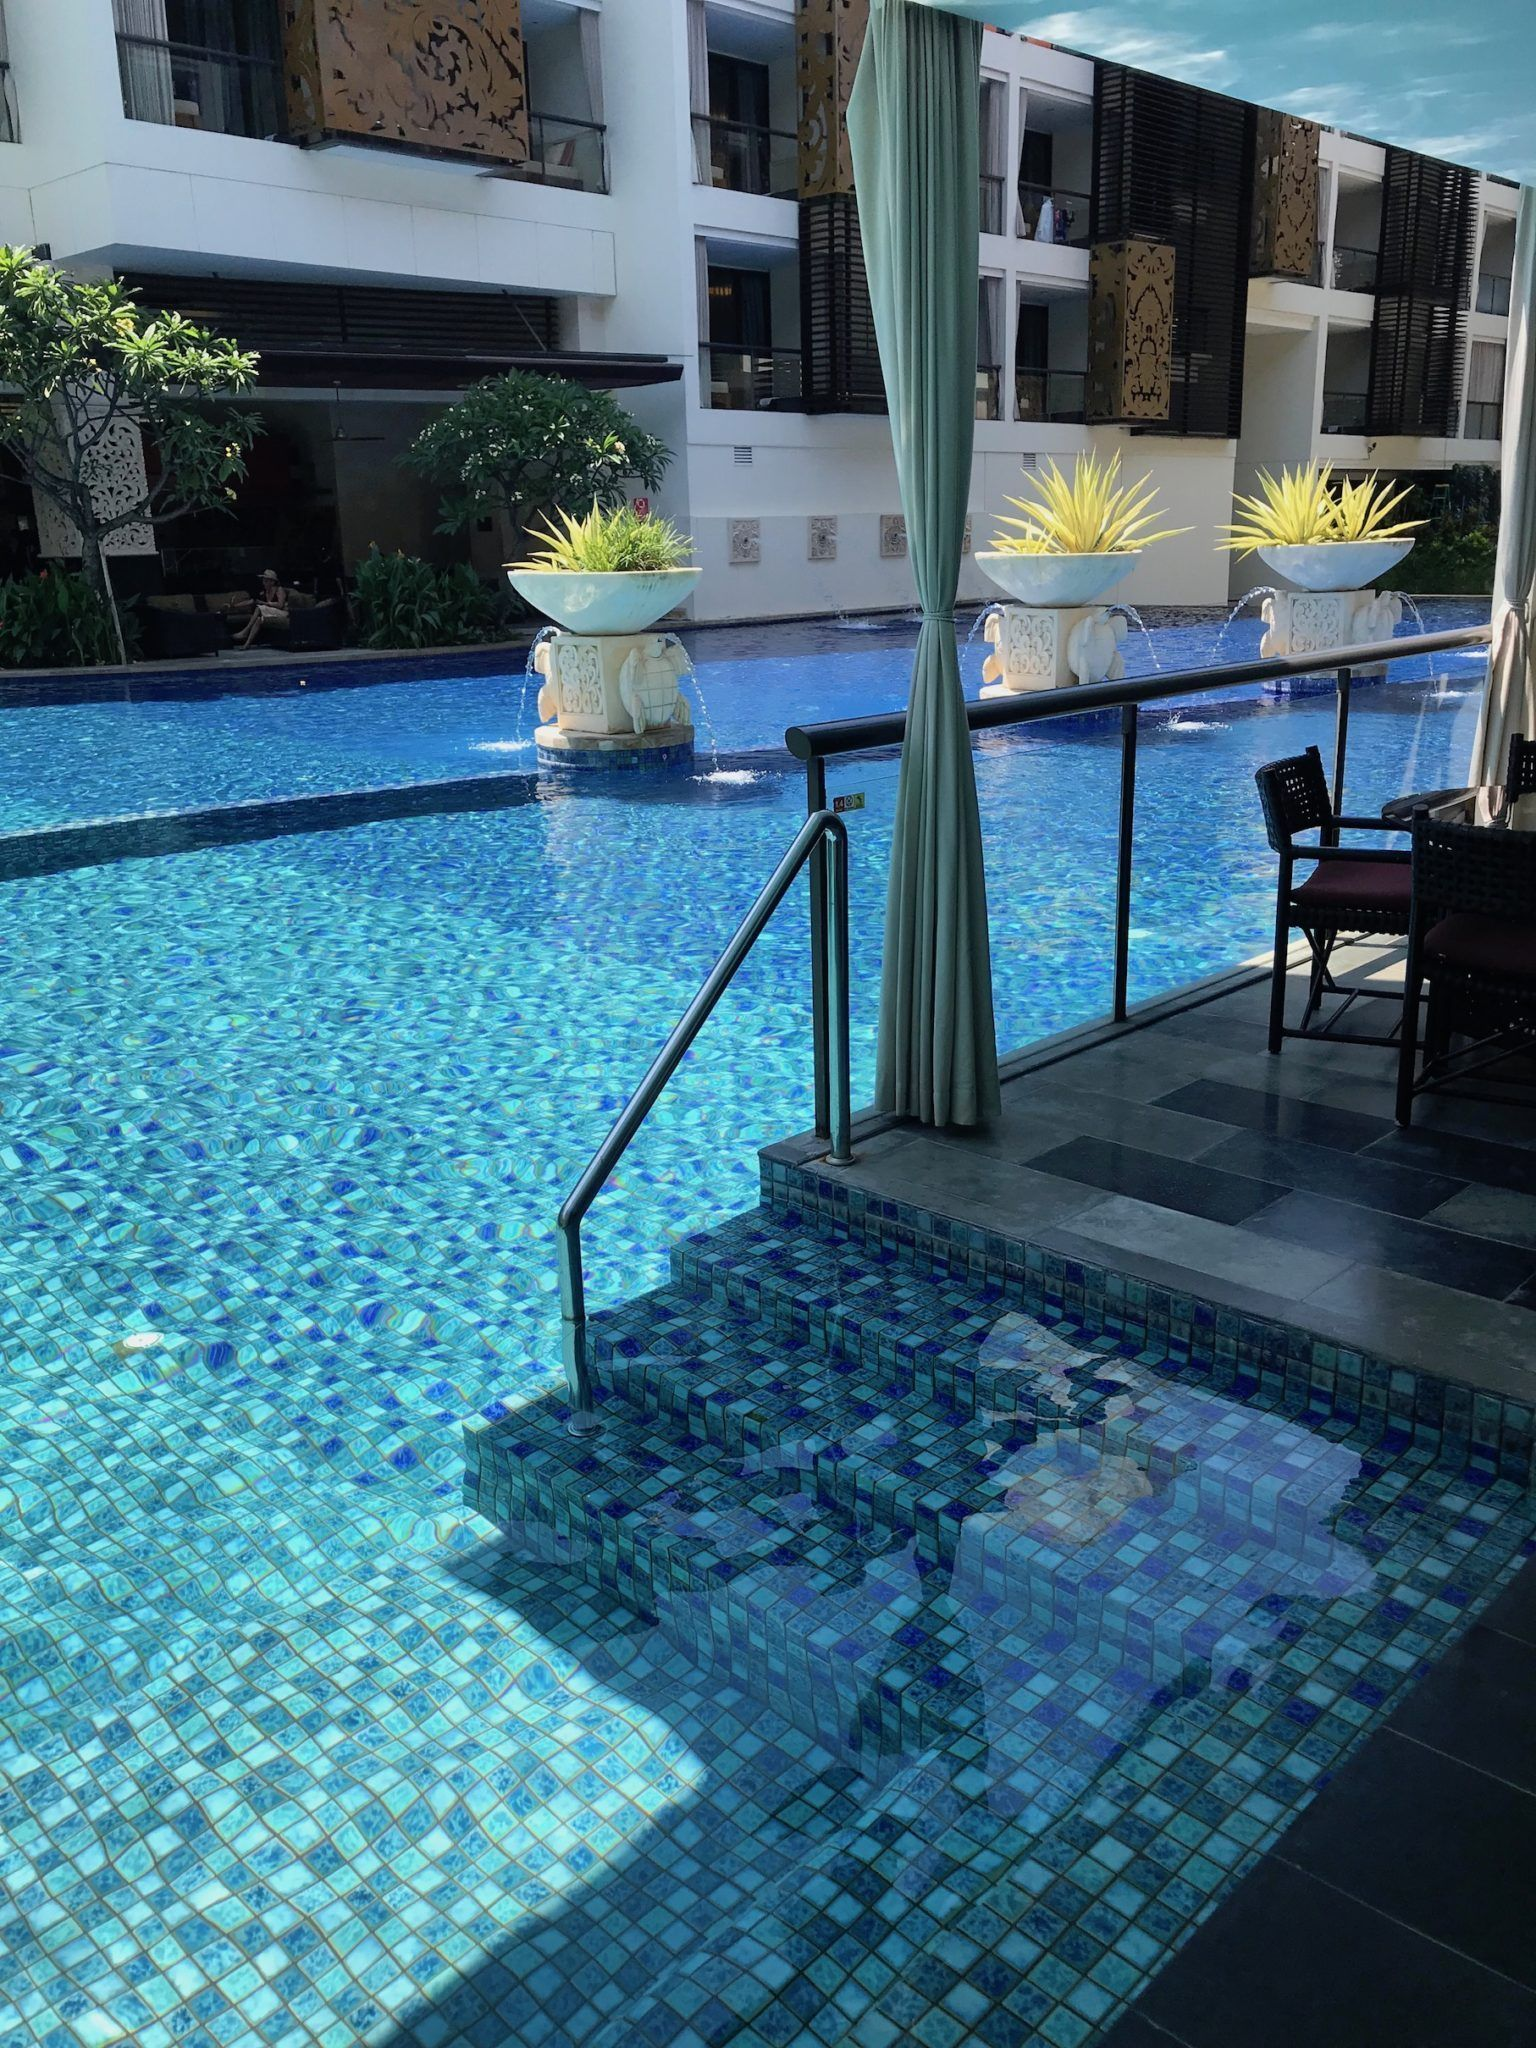 Best Pool Access Hotel Rooms in Bali for Under $100 - Travel ...